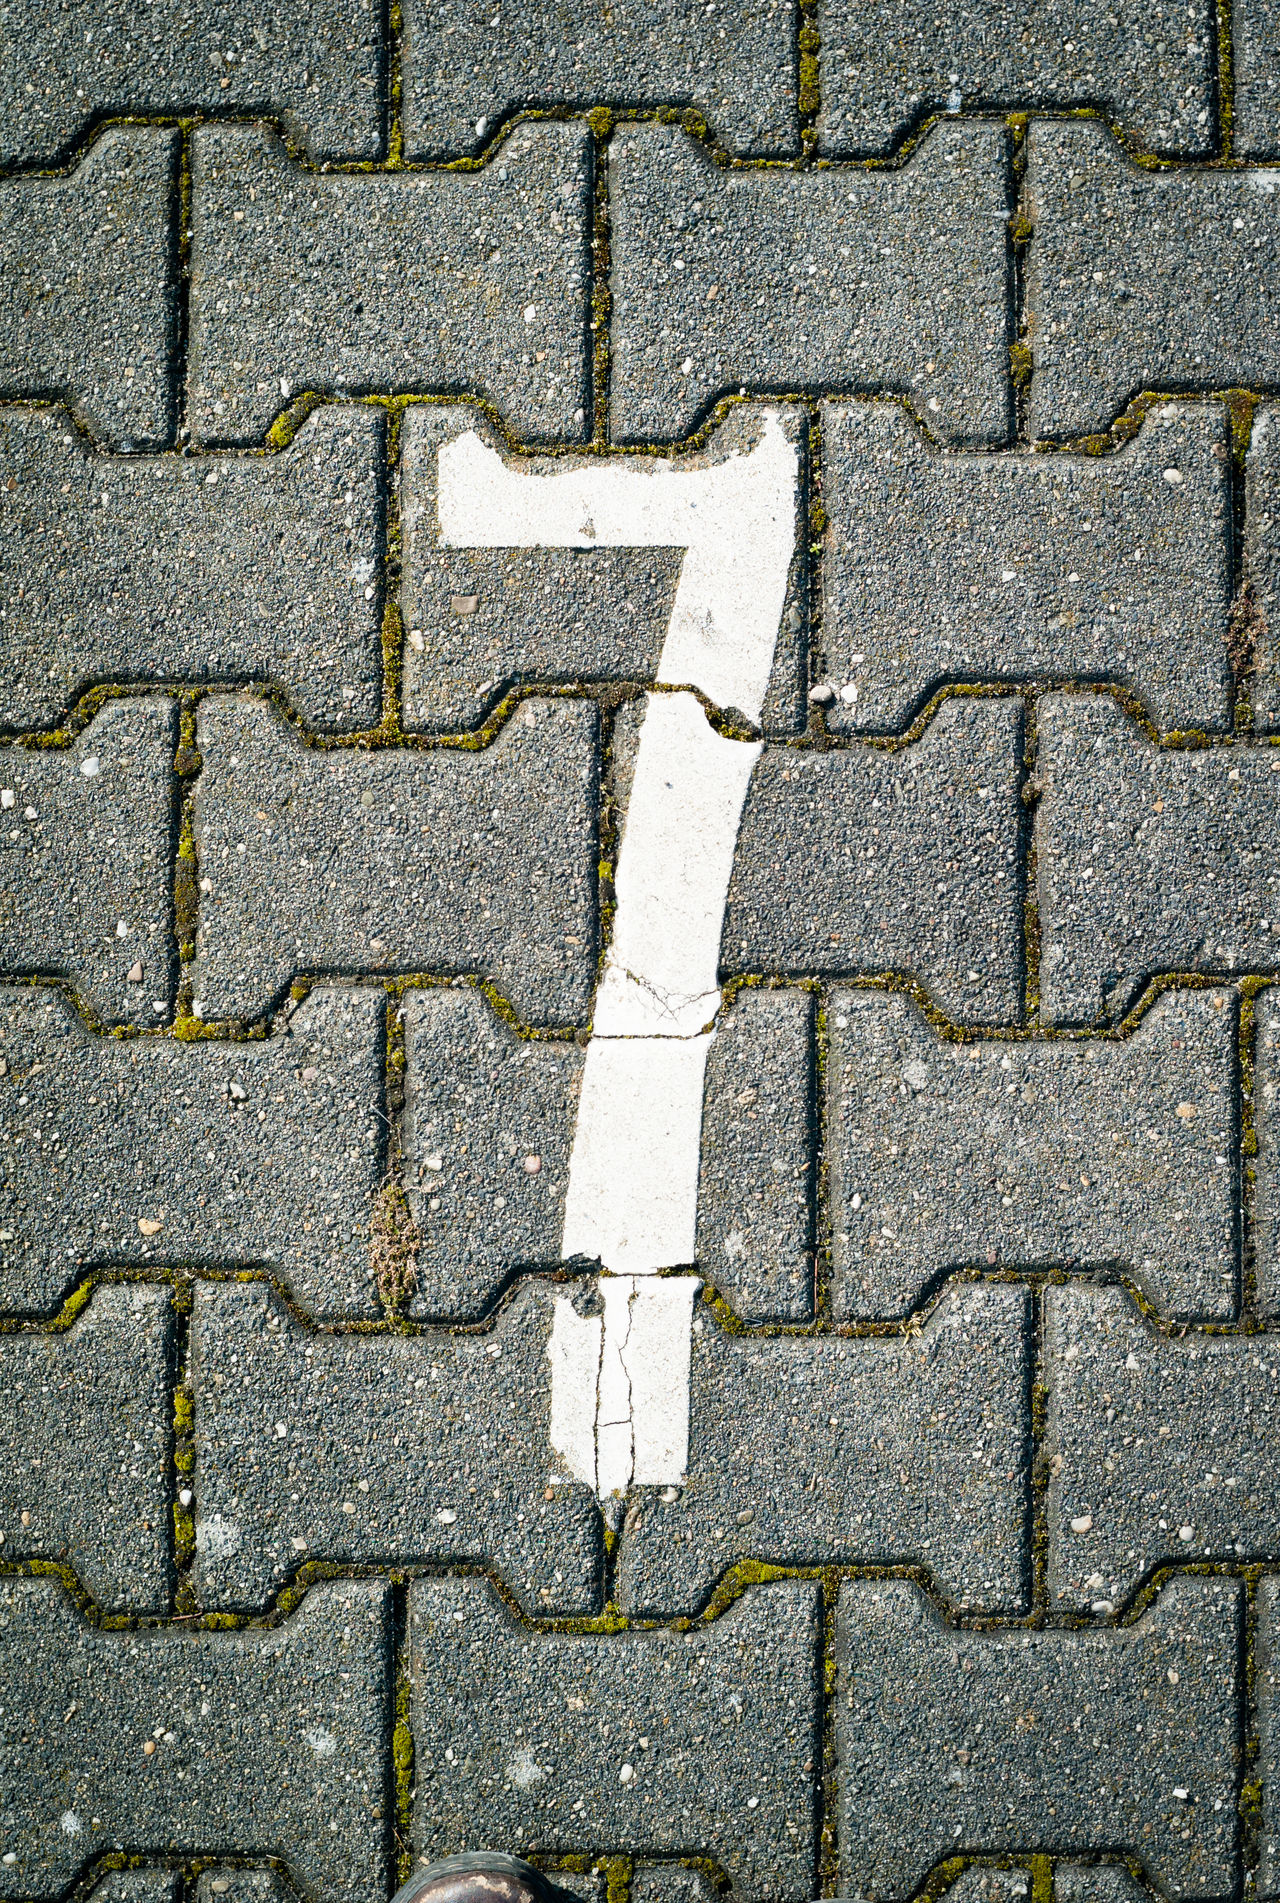 Number seven on pavement Abstract Background Texture Backgrounds Number Pavement Seven Texture Texture And Surfaces Textures And Surfaces